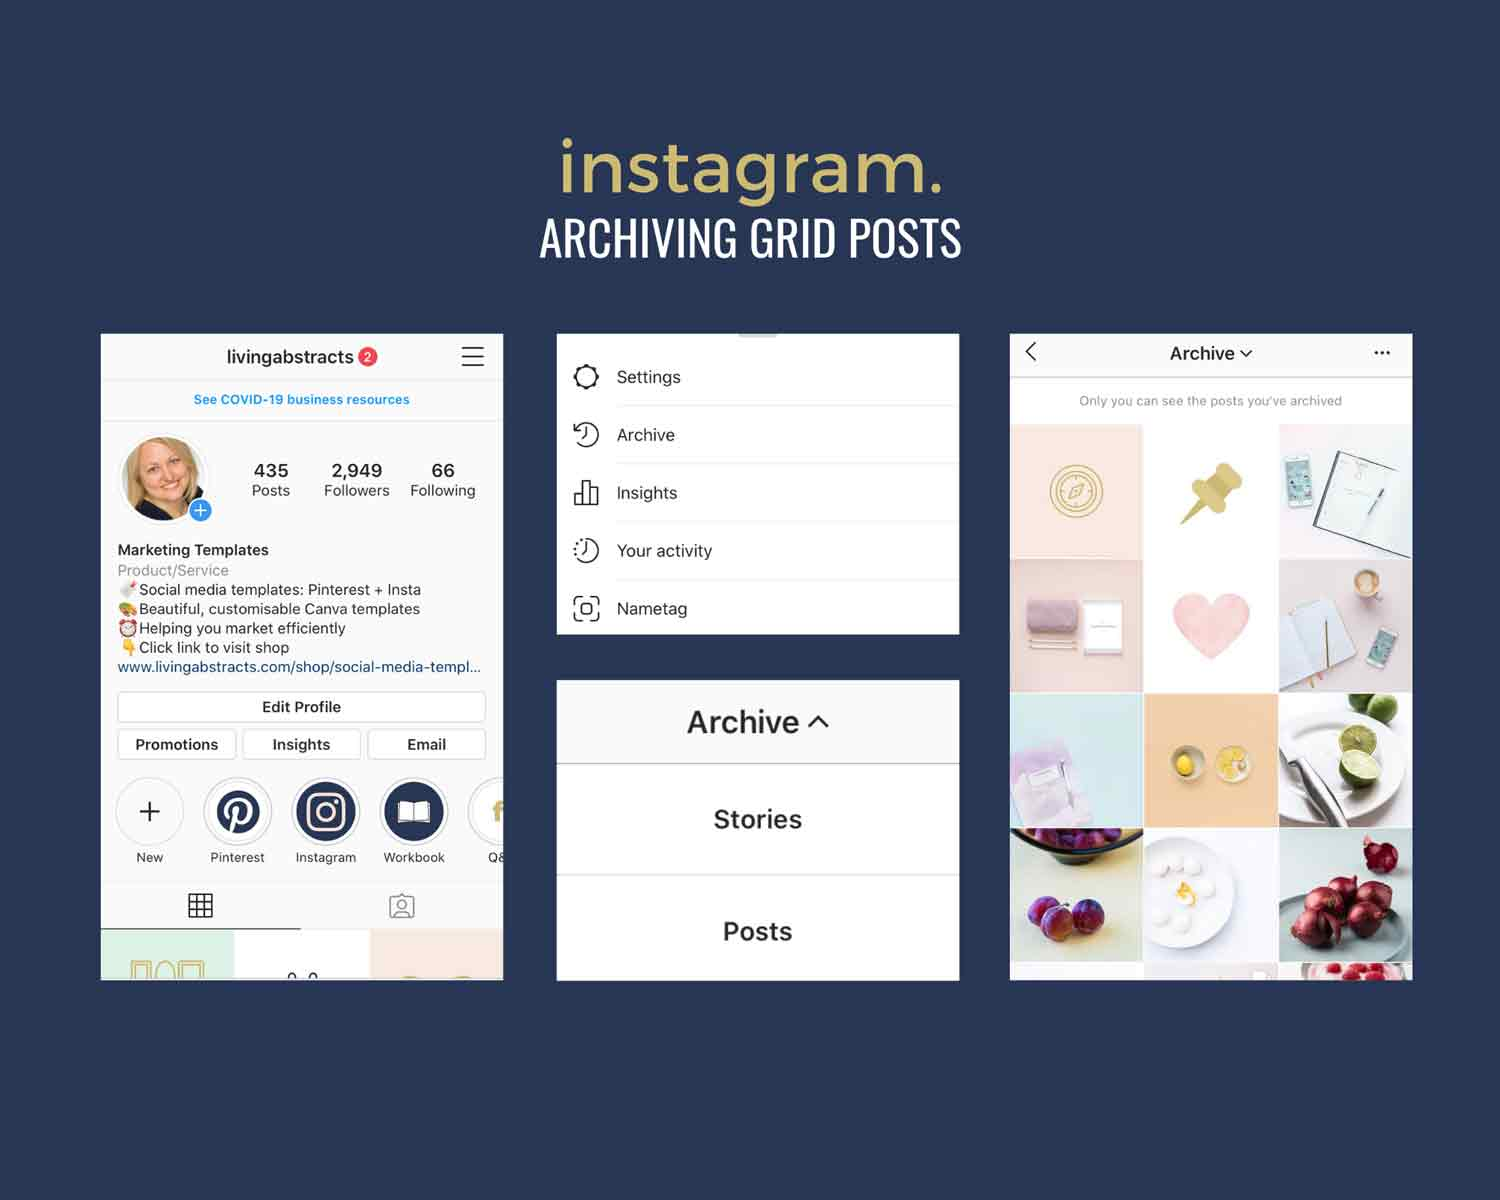 How to archive Instagram posts in 2020 - a step by step guide.